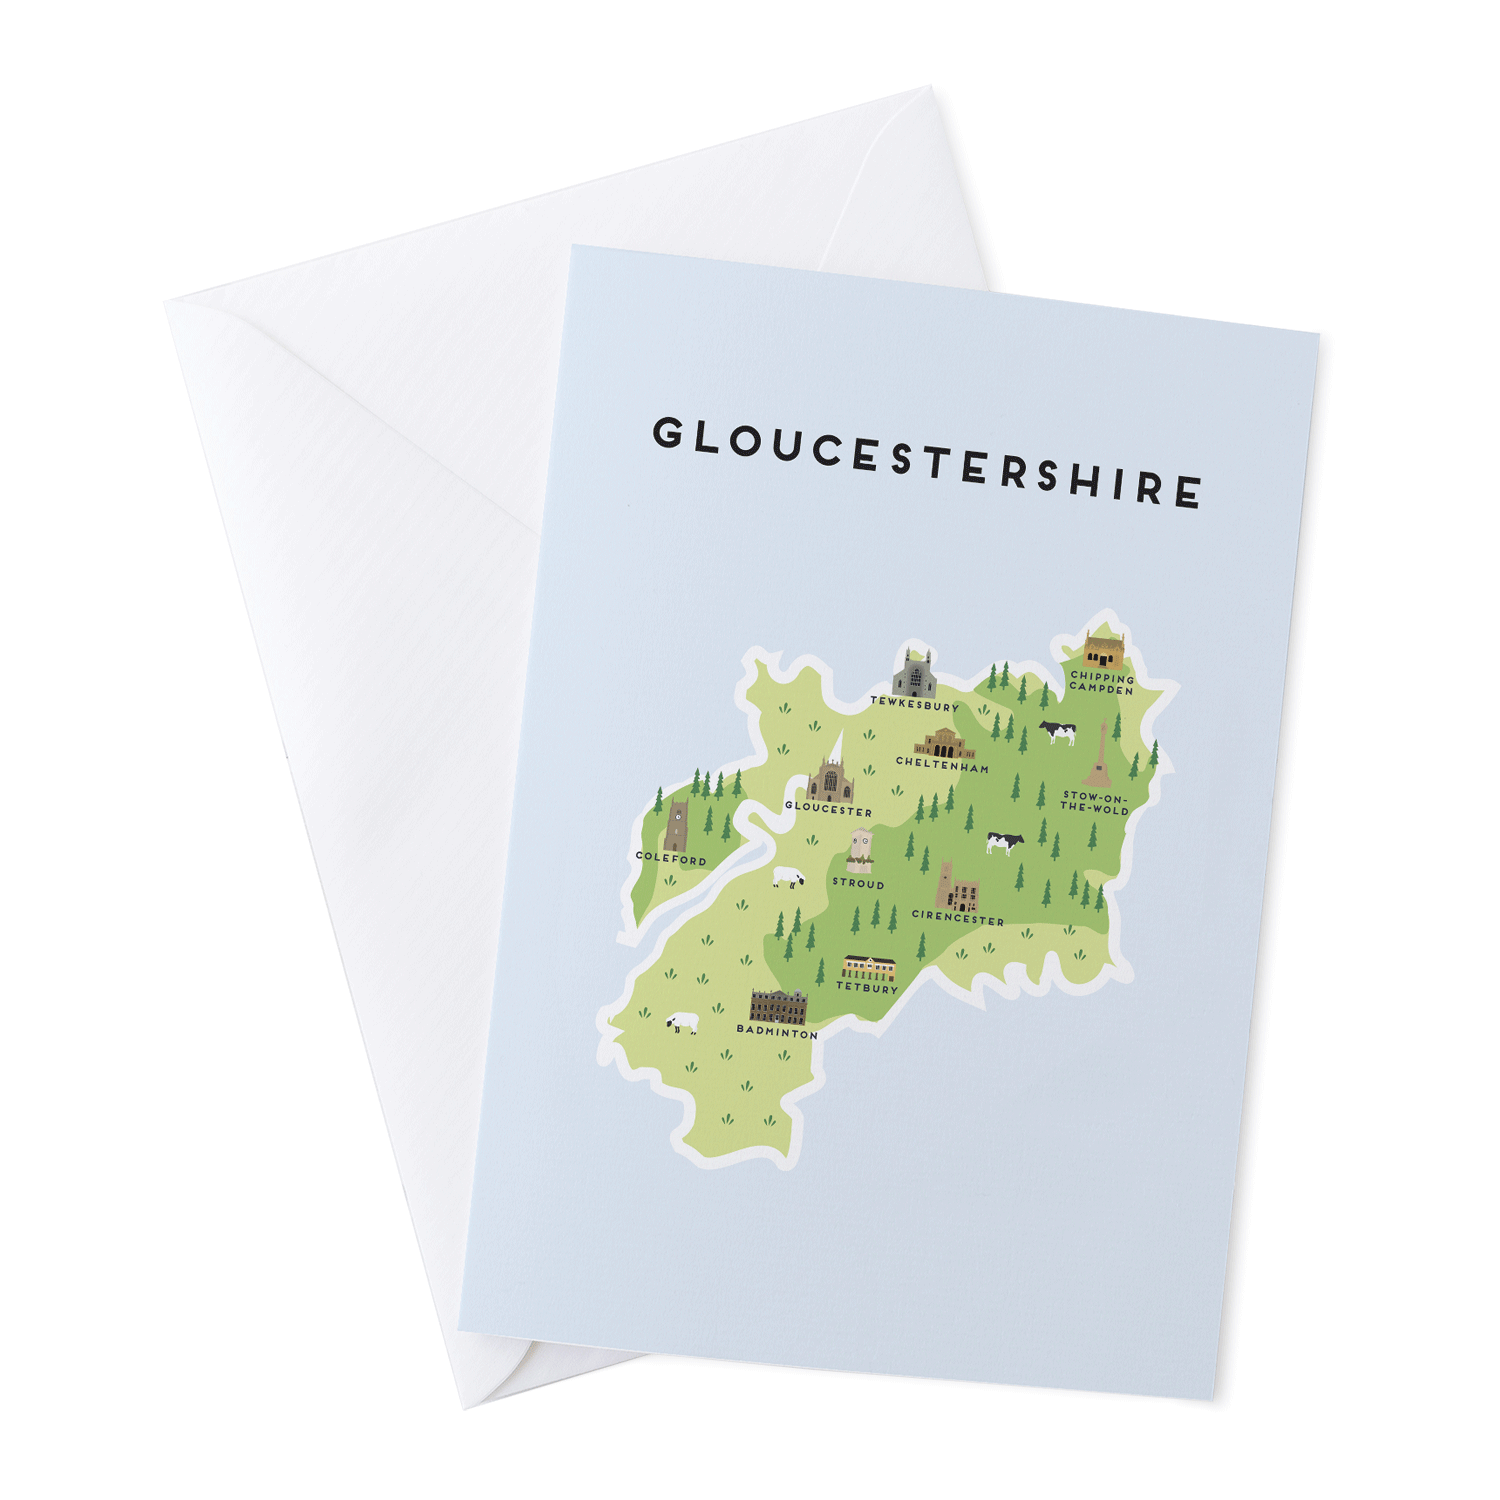 Place in Print Pepper Pot Studios Gloucestershire Illustrated Map Greetings Card